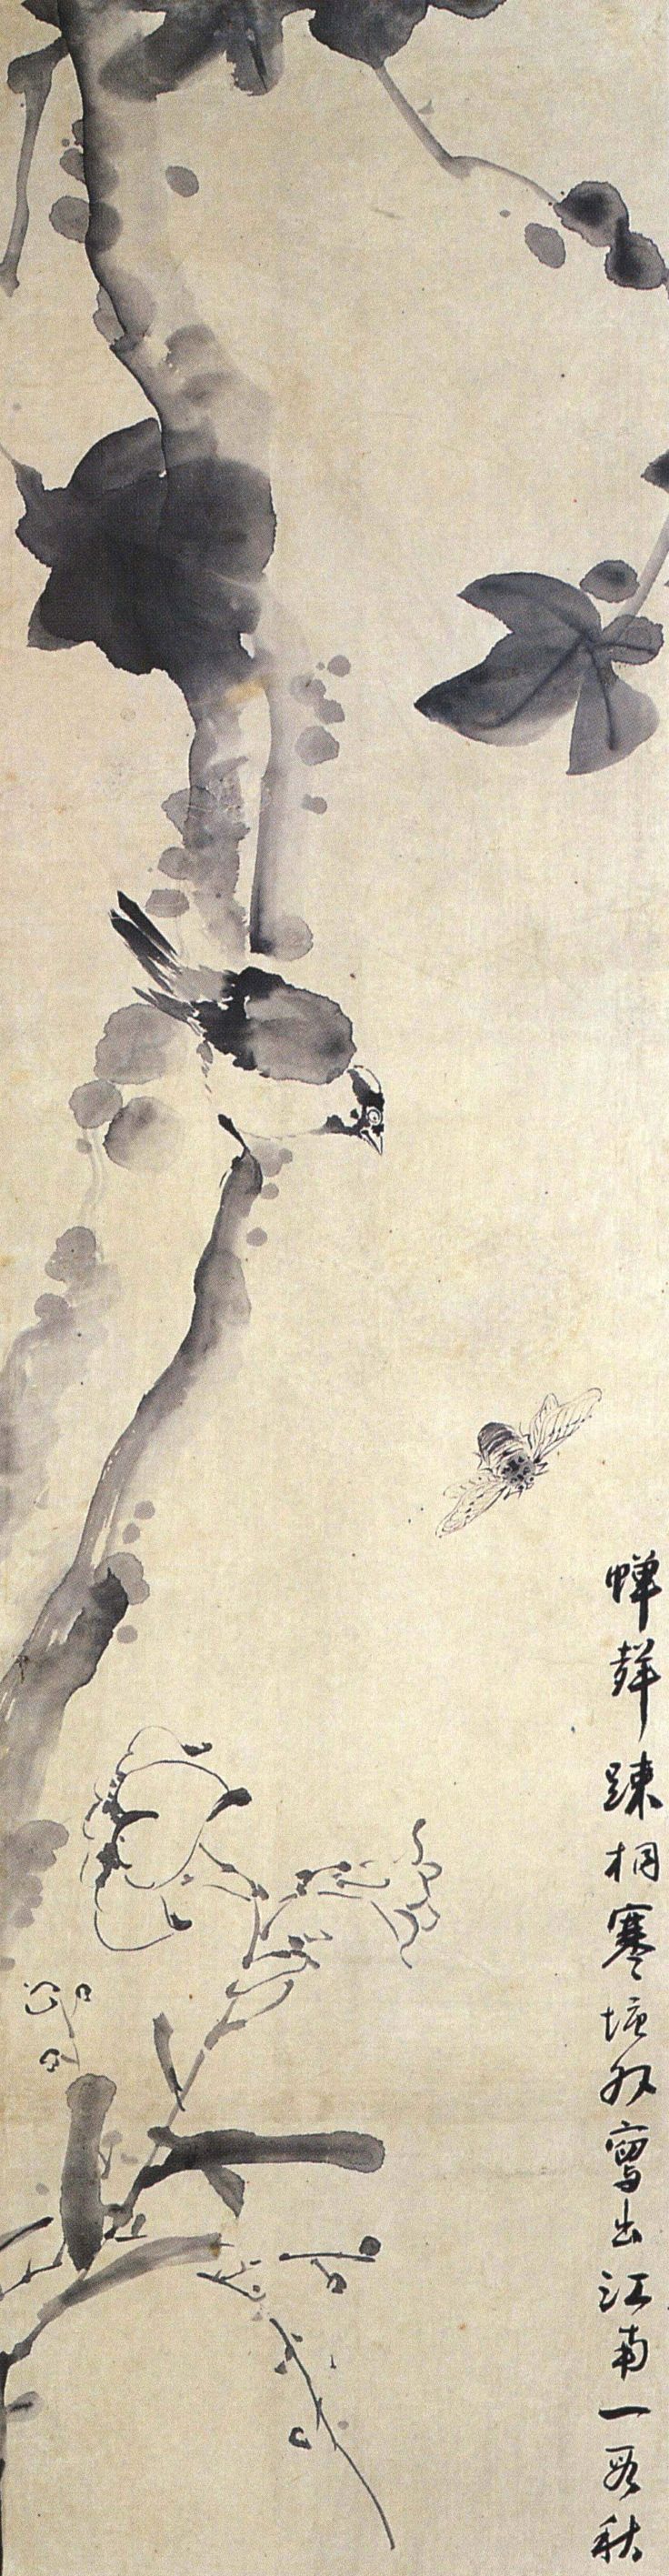 (Korea) by Jang Seung-eop (1843-1897). aka Owon. ca 19th century CE. ink on paper.